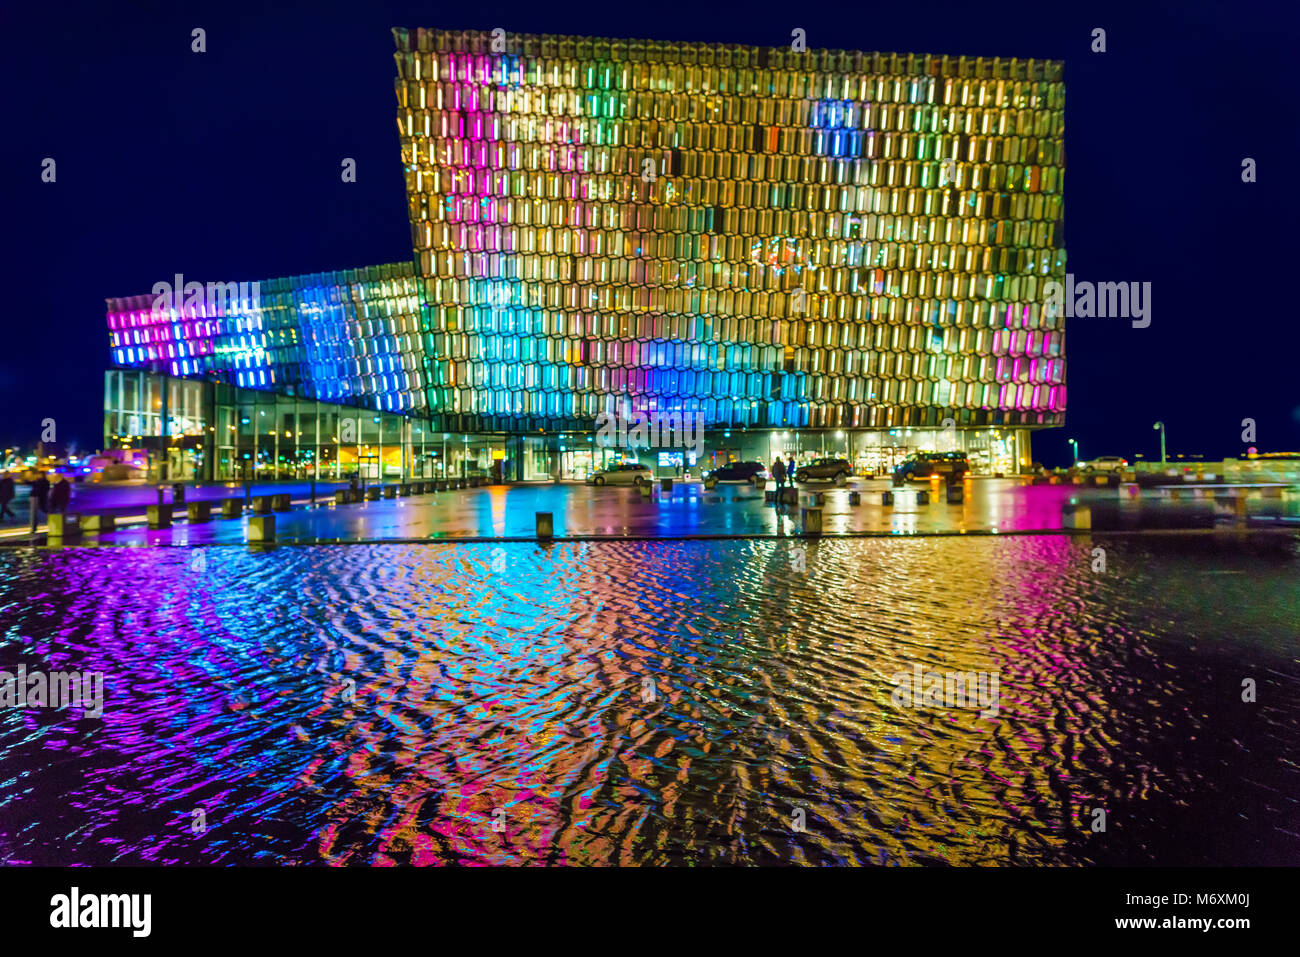 Bunte Lichter - Winter Lights Festival, Harpa Music Hall und Konferenzzentrum, Reykjavik, Island Stockbild